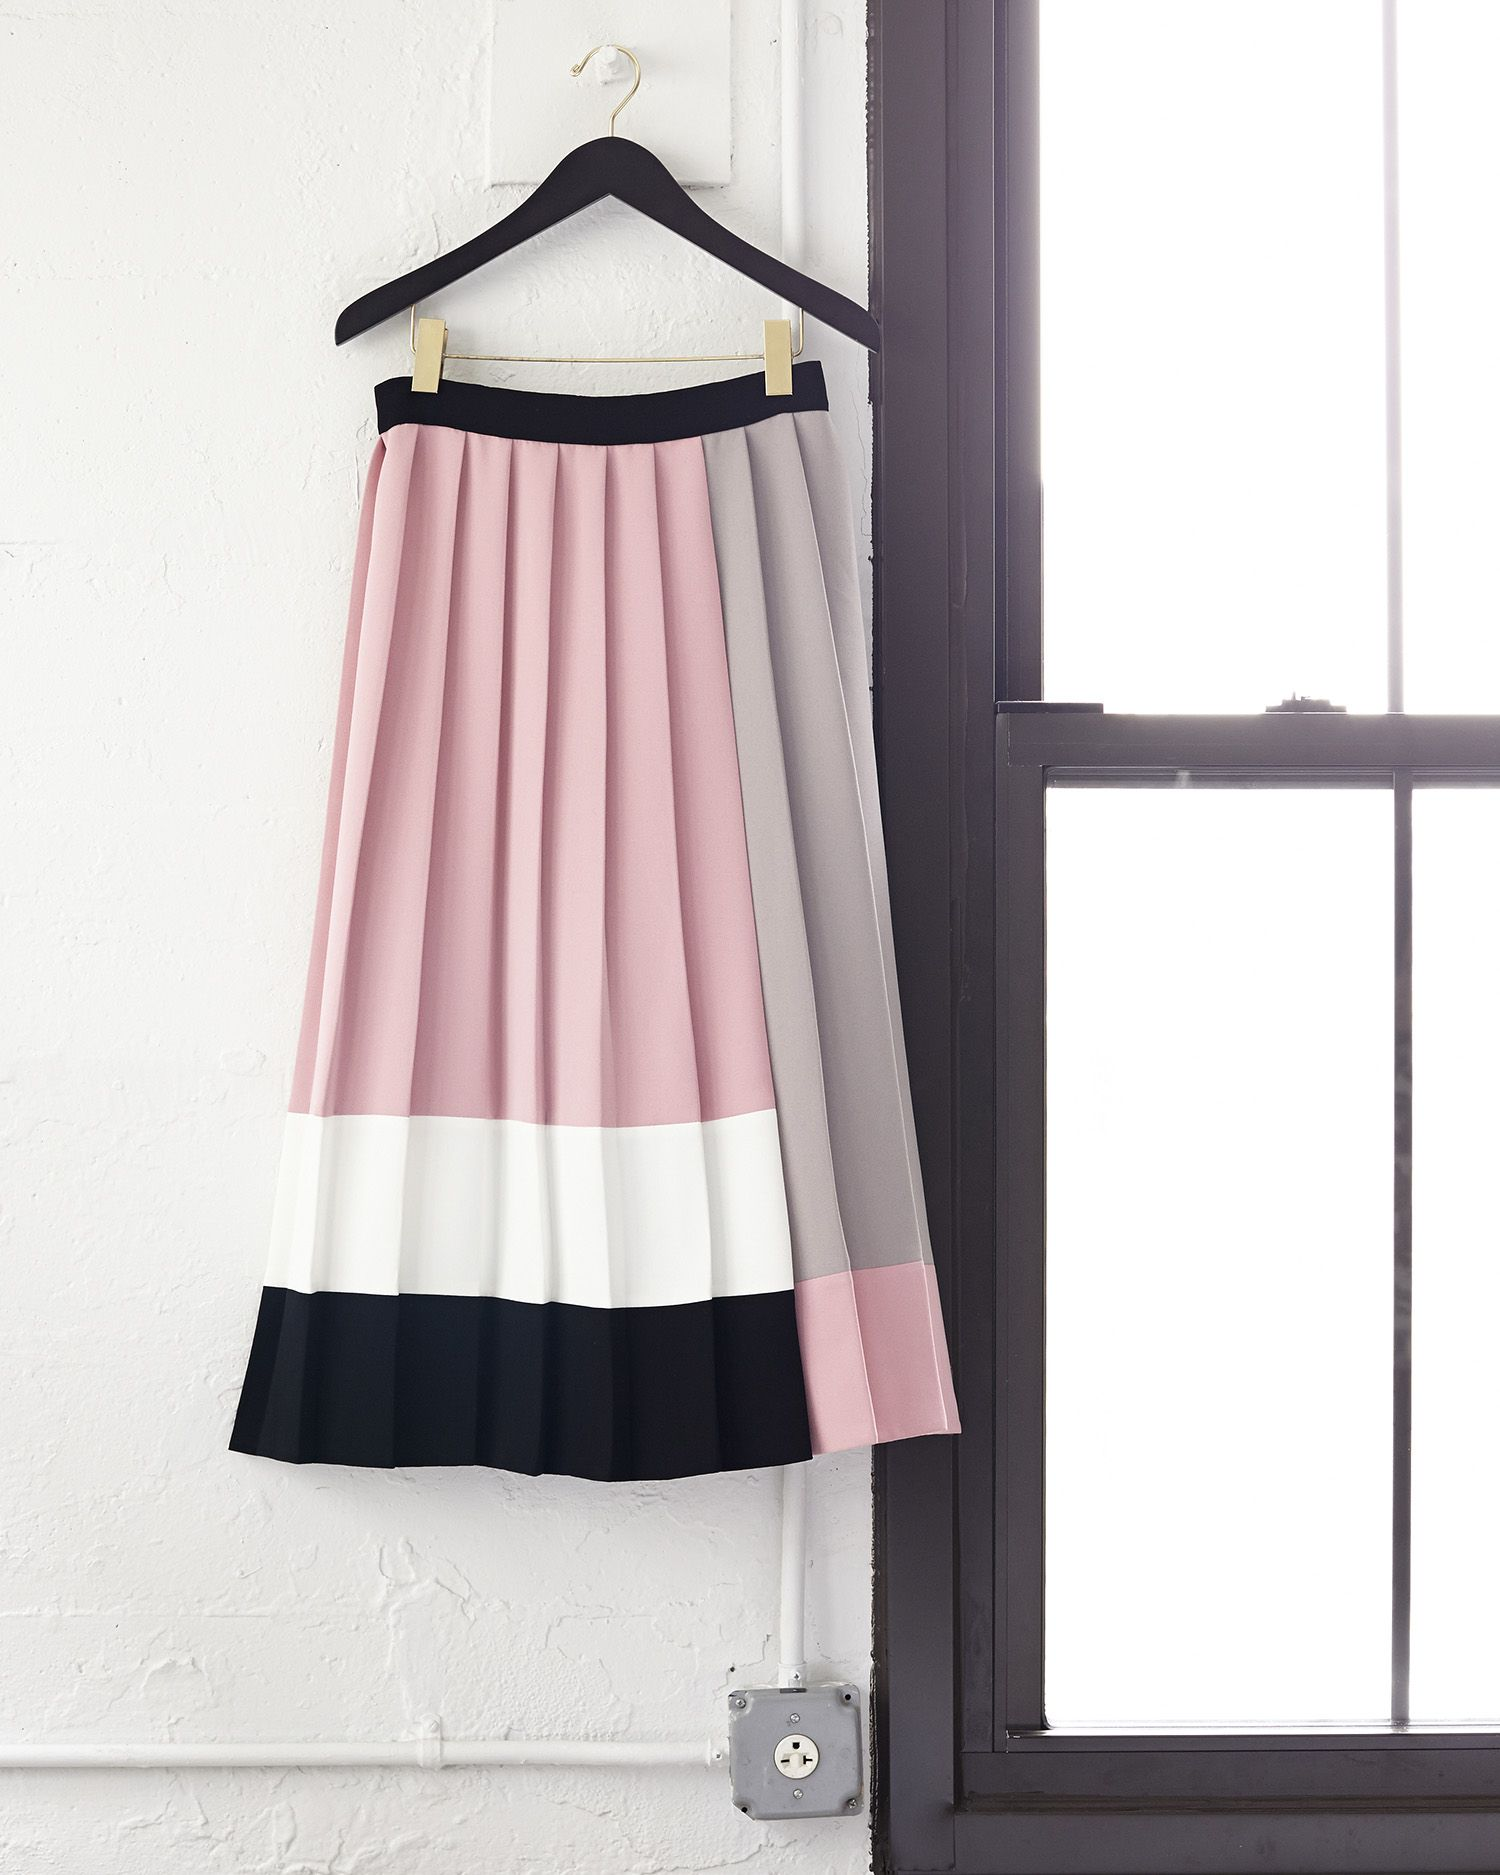 the cool hues of this colorblocked skirt were inspired by neapolitan ice cream, one of our favorite sweet treats. and, like that confection, this piece is classic without being the least bit boring.